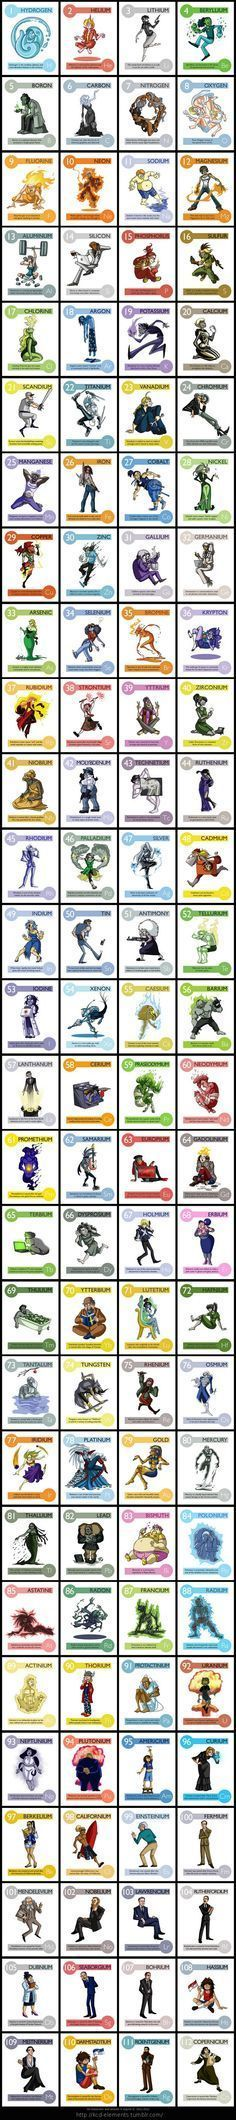 http://kcd-elements.tumblr.com Here are (almost) all of the elements of the periodic table portrayed as cartoon characters! You can see close-up versions of each element a...